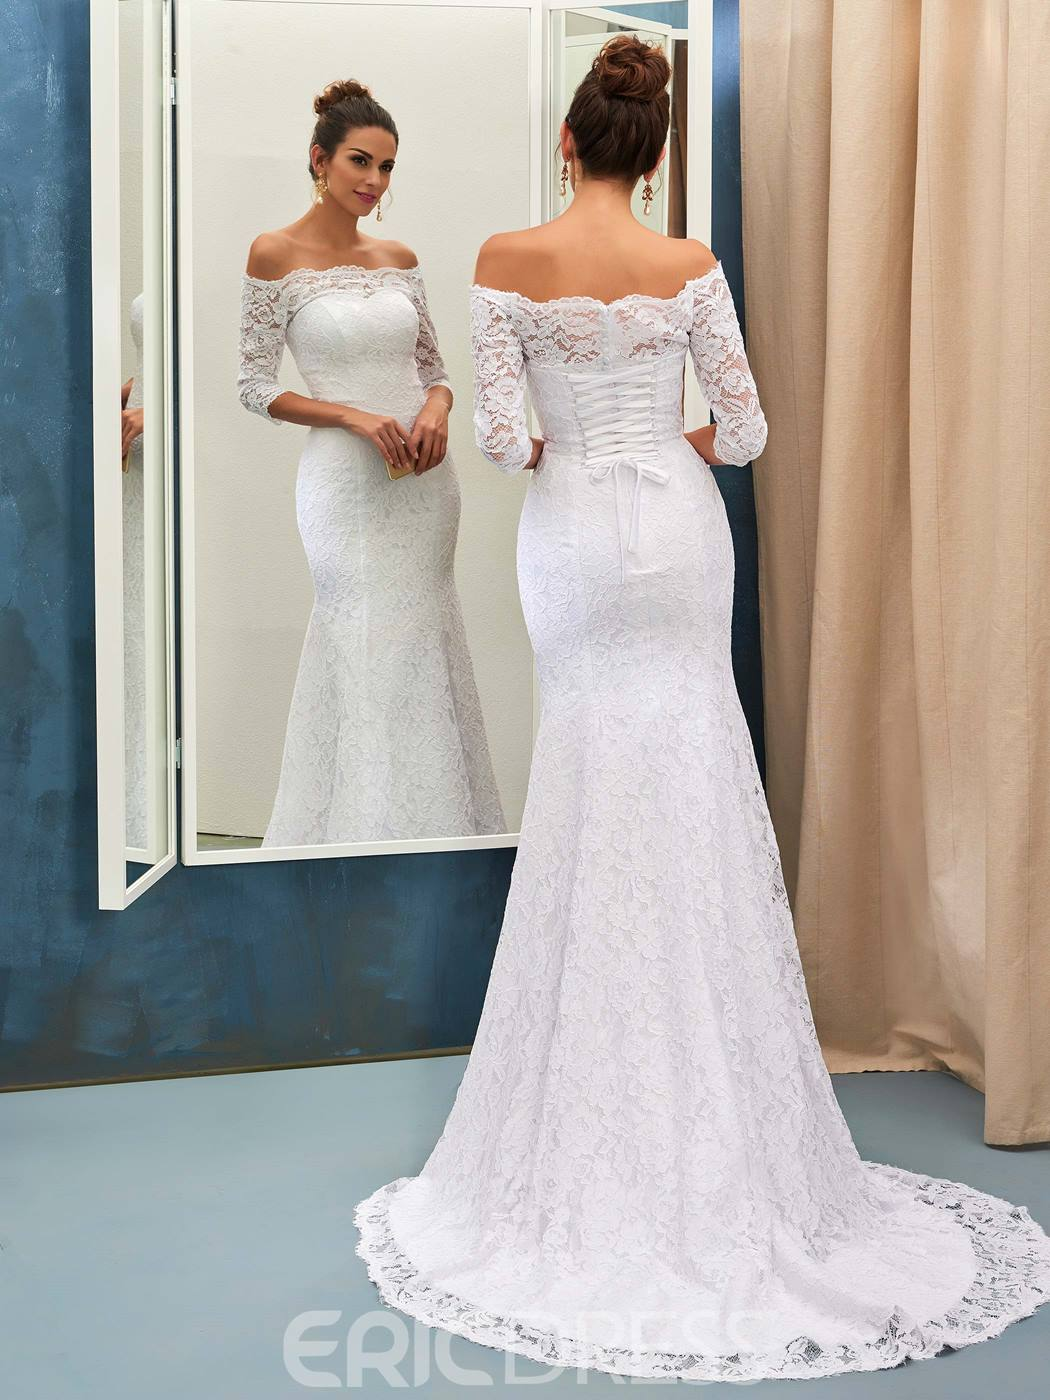 Free shipping wedding dresses special occasion dresses online ericdress lace mermaid off the shoulder wedding dress with sleeves ombrellifo Image collections